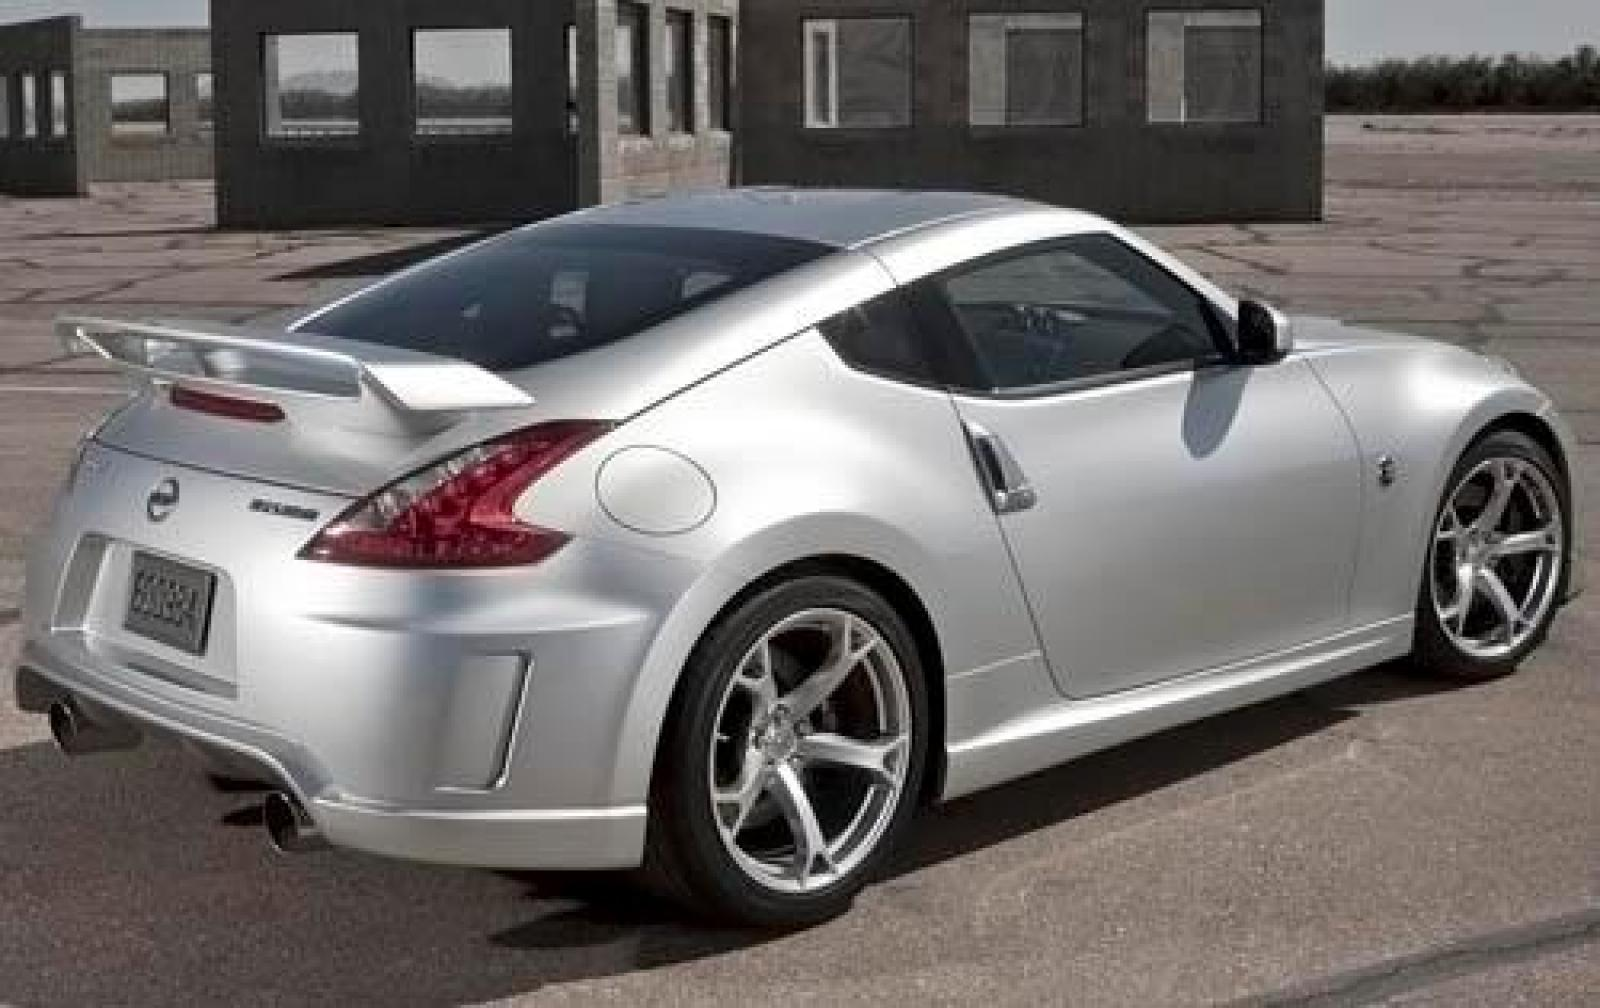 2009 nissan 370z information and photos zombiedrive. Black Bedroom Furniture Sets. Home Design Ideas